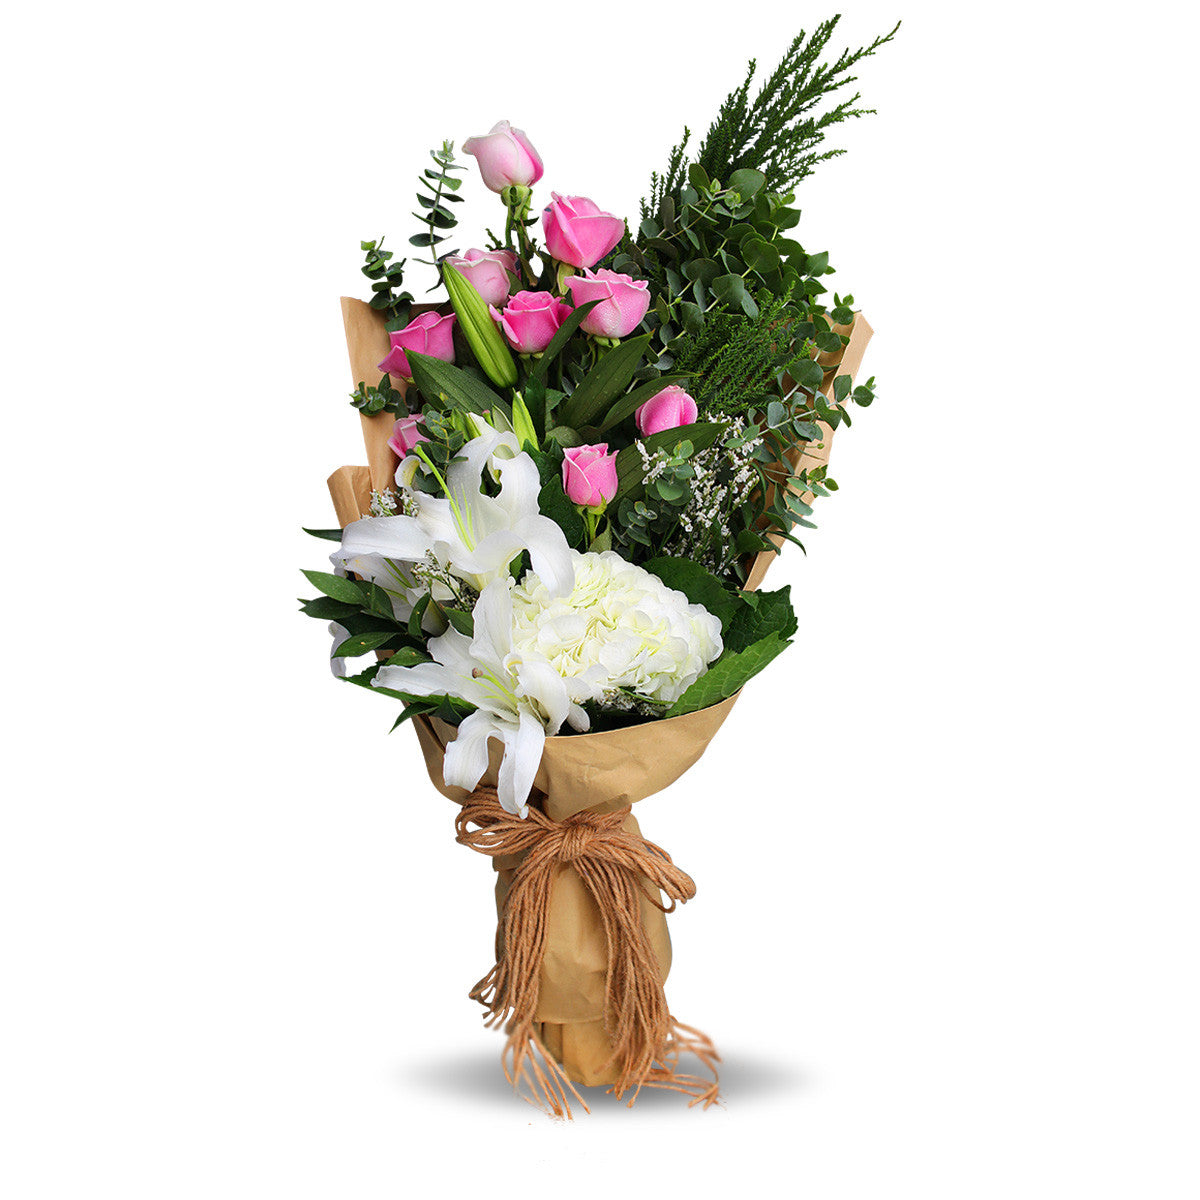 Gorgeous Bouquet Of Roses, Lilies And Decorative Leaves - April Flora